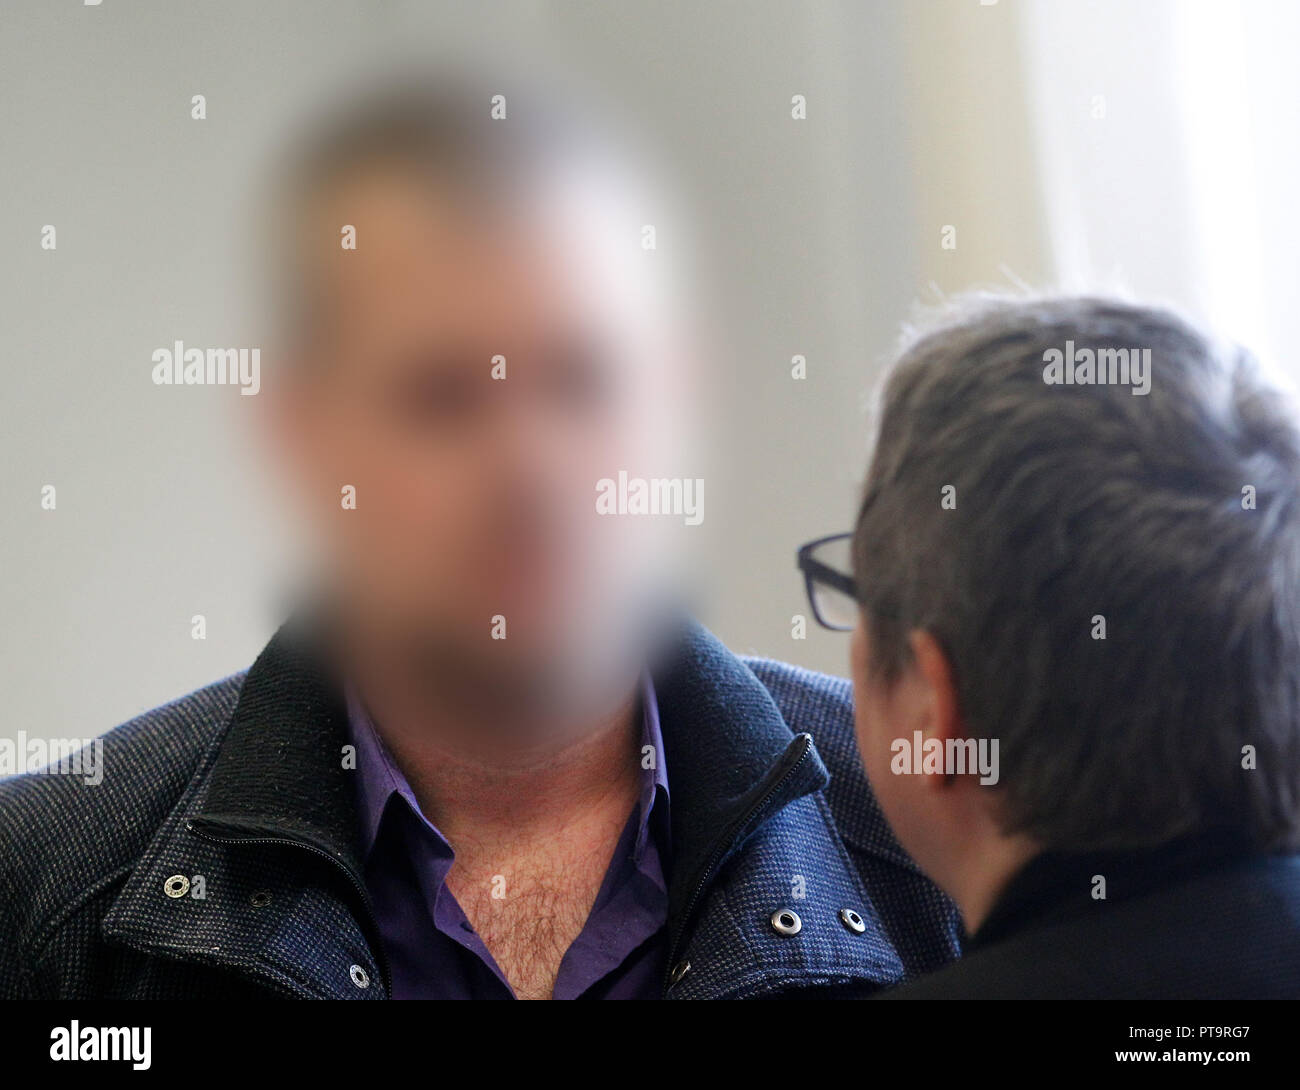 08 October 2018, North Rhine-Westphalia, Essen: A defendant accused of extortion is waiting for the trial to begin in Essen Regional Court and talks to his lawyer Gabriele Fengler-Trost before the trial begins. He is said to have threatened to poison food in a discount store between March and April 2018. The defendant had been arrested at the handover of 100,000 euros in cash. Photo: Roland Weihrauch/dpa - ACHTUNG: Person wurde aus rechtlichen Gründen gepixelt - Stock Image